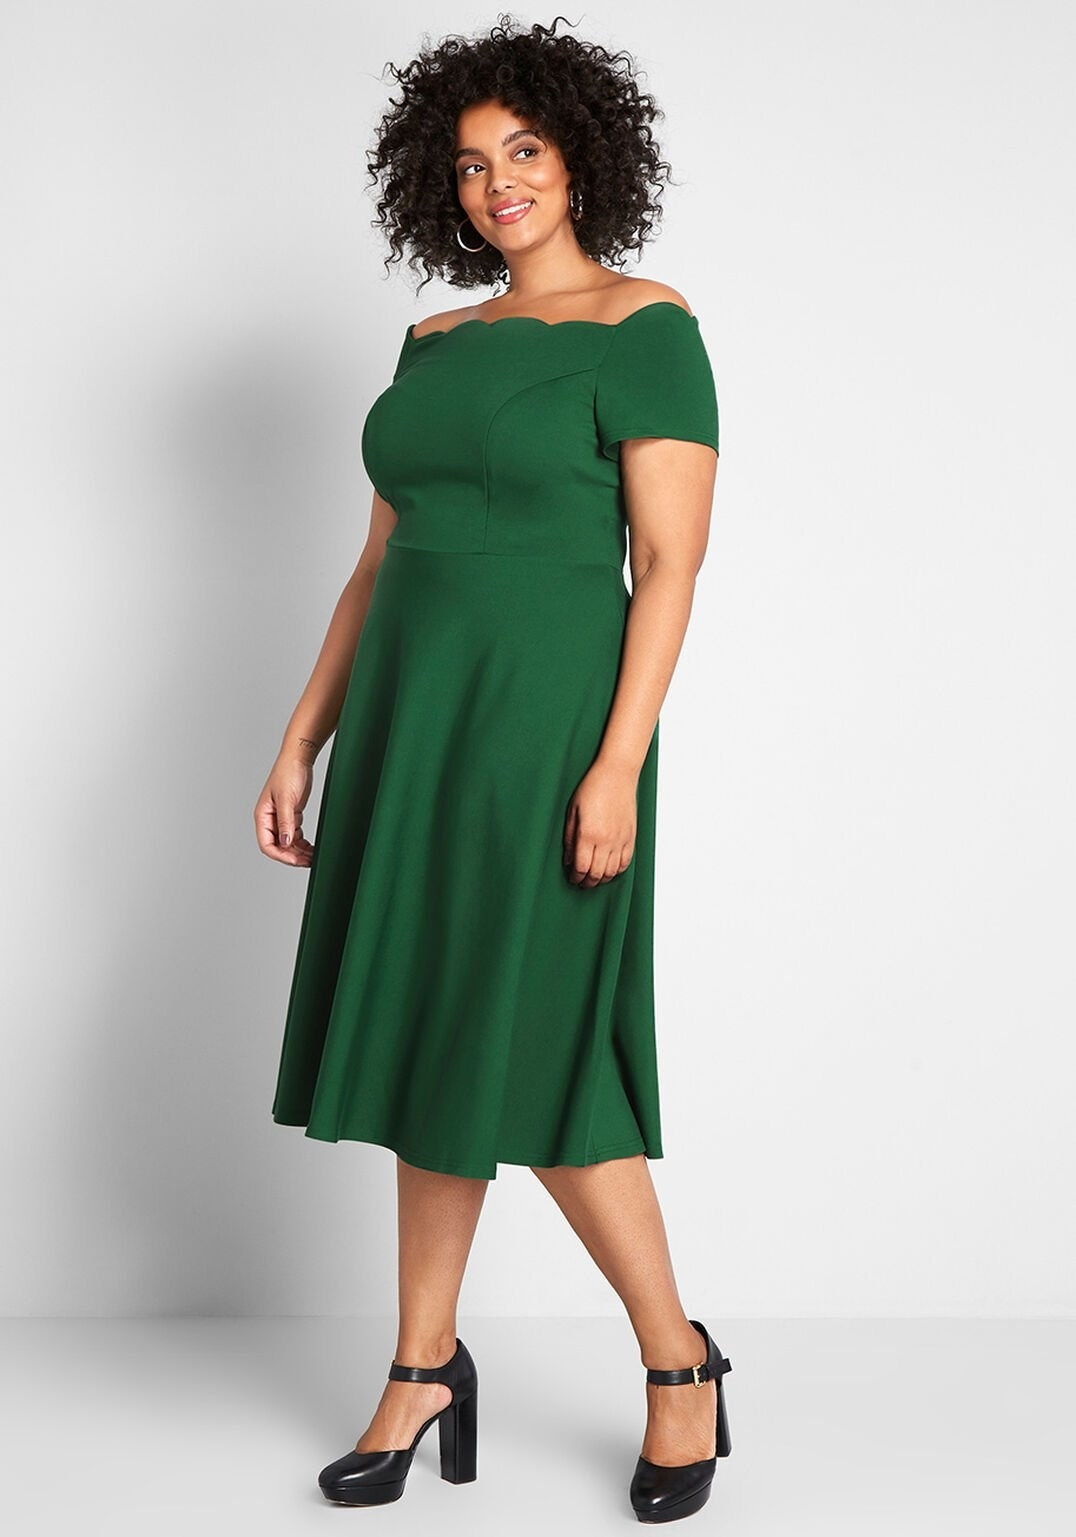 a model in the mid-length dress in emerald green